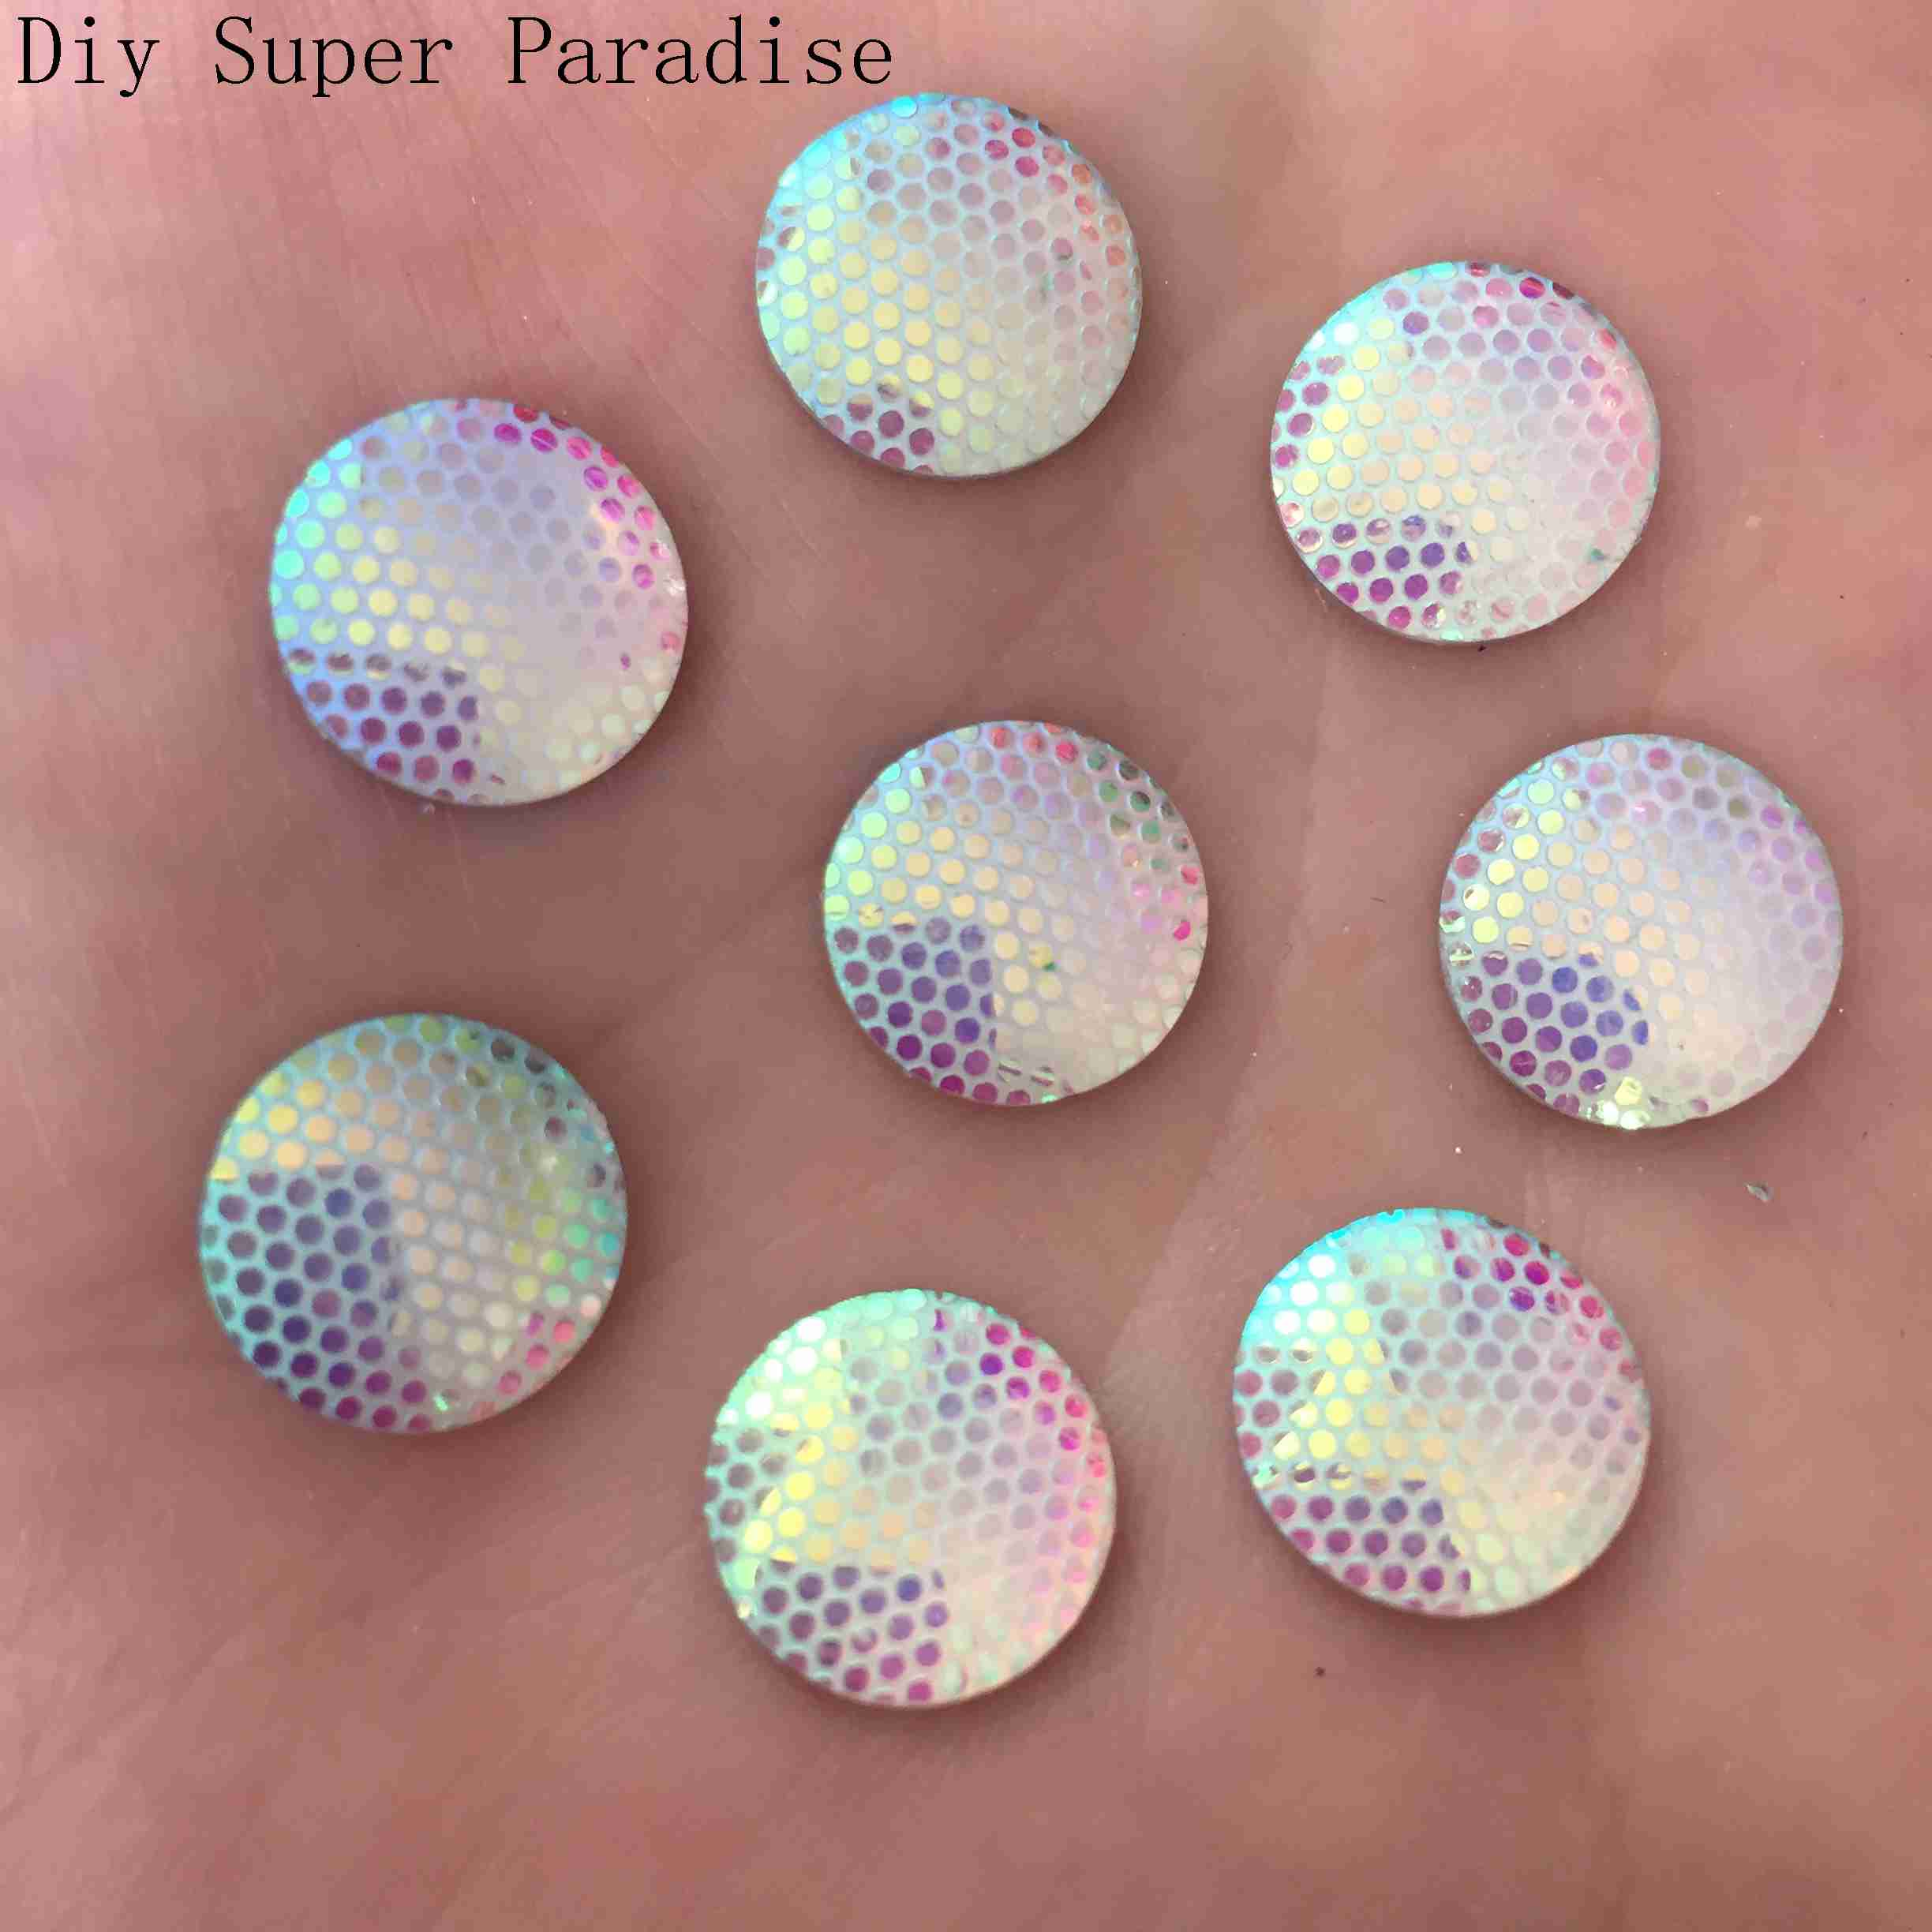 NEW DIY 400PCS 12mm AB Resin Round Rhinestone Flat Back Scrapbook for Phone K71*10